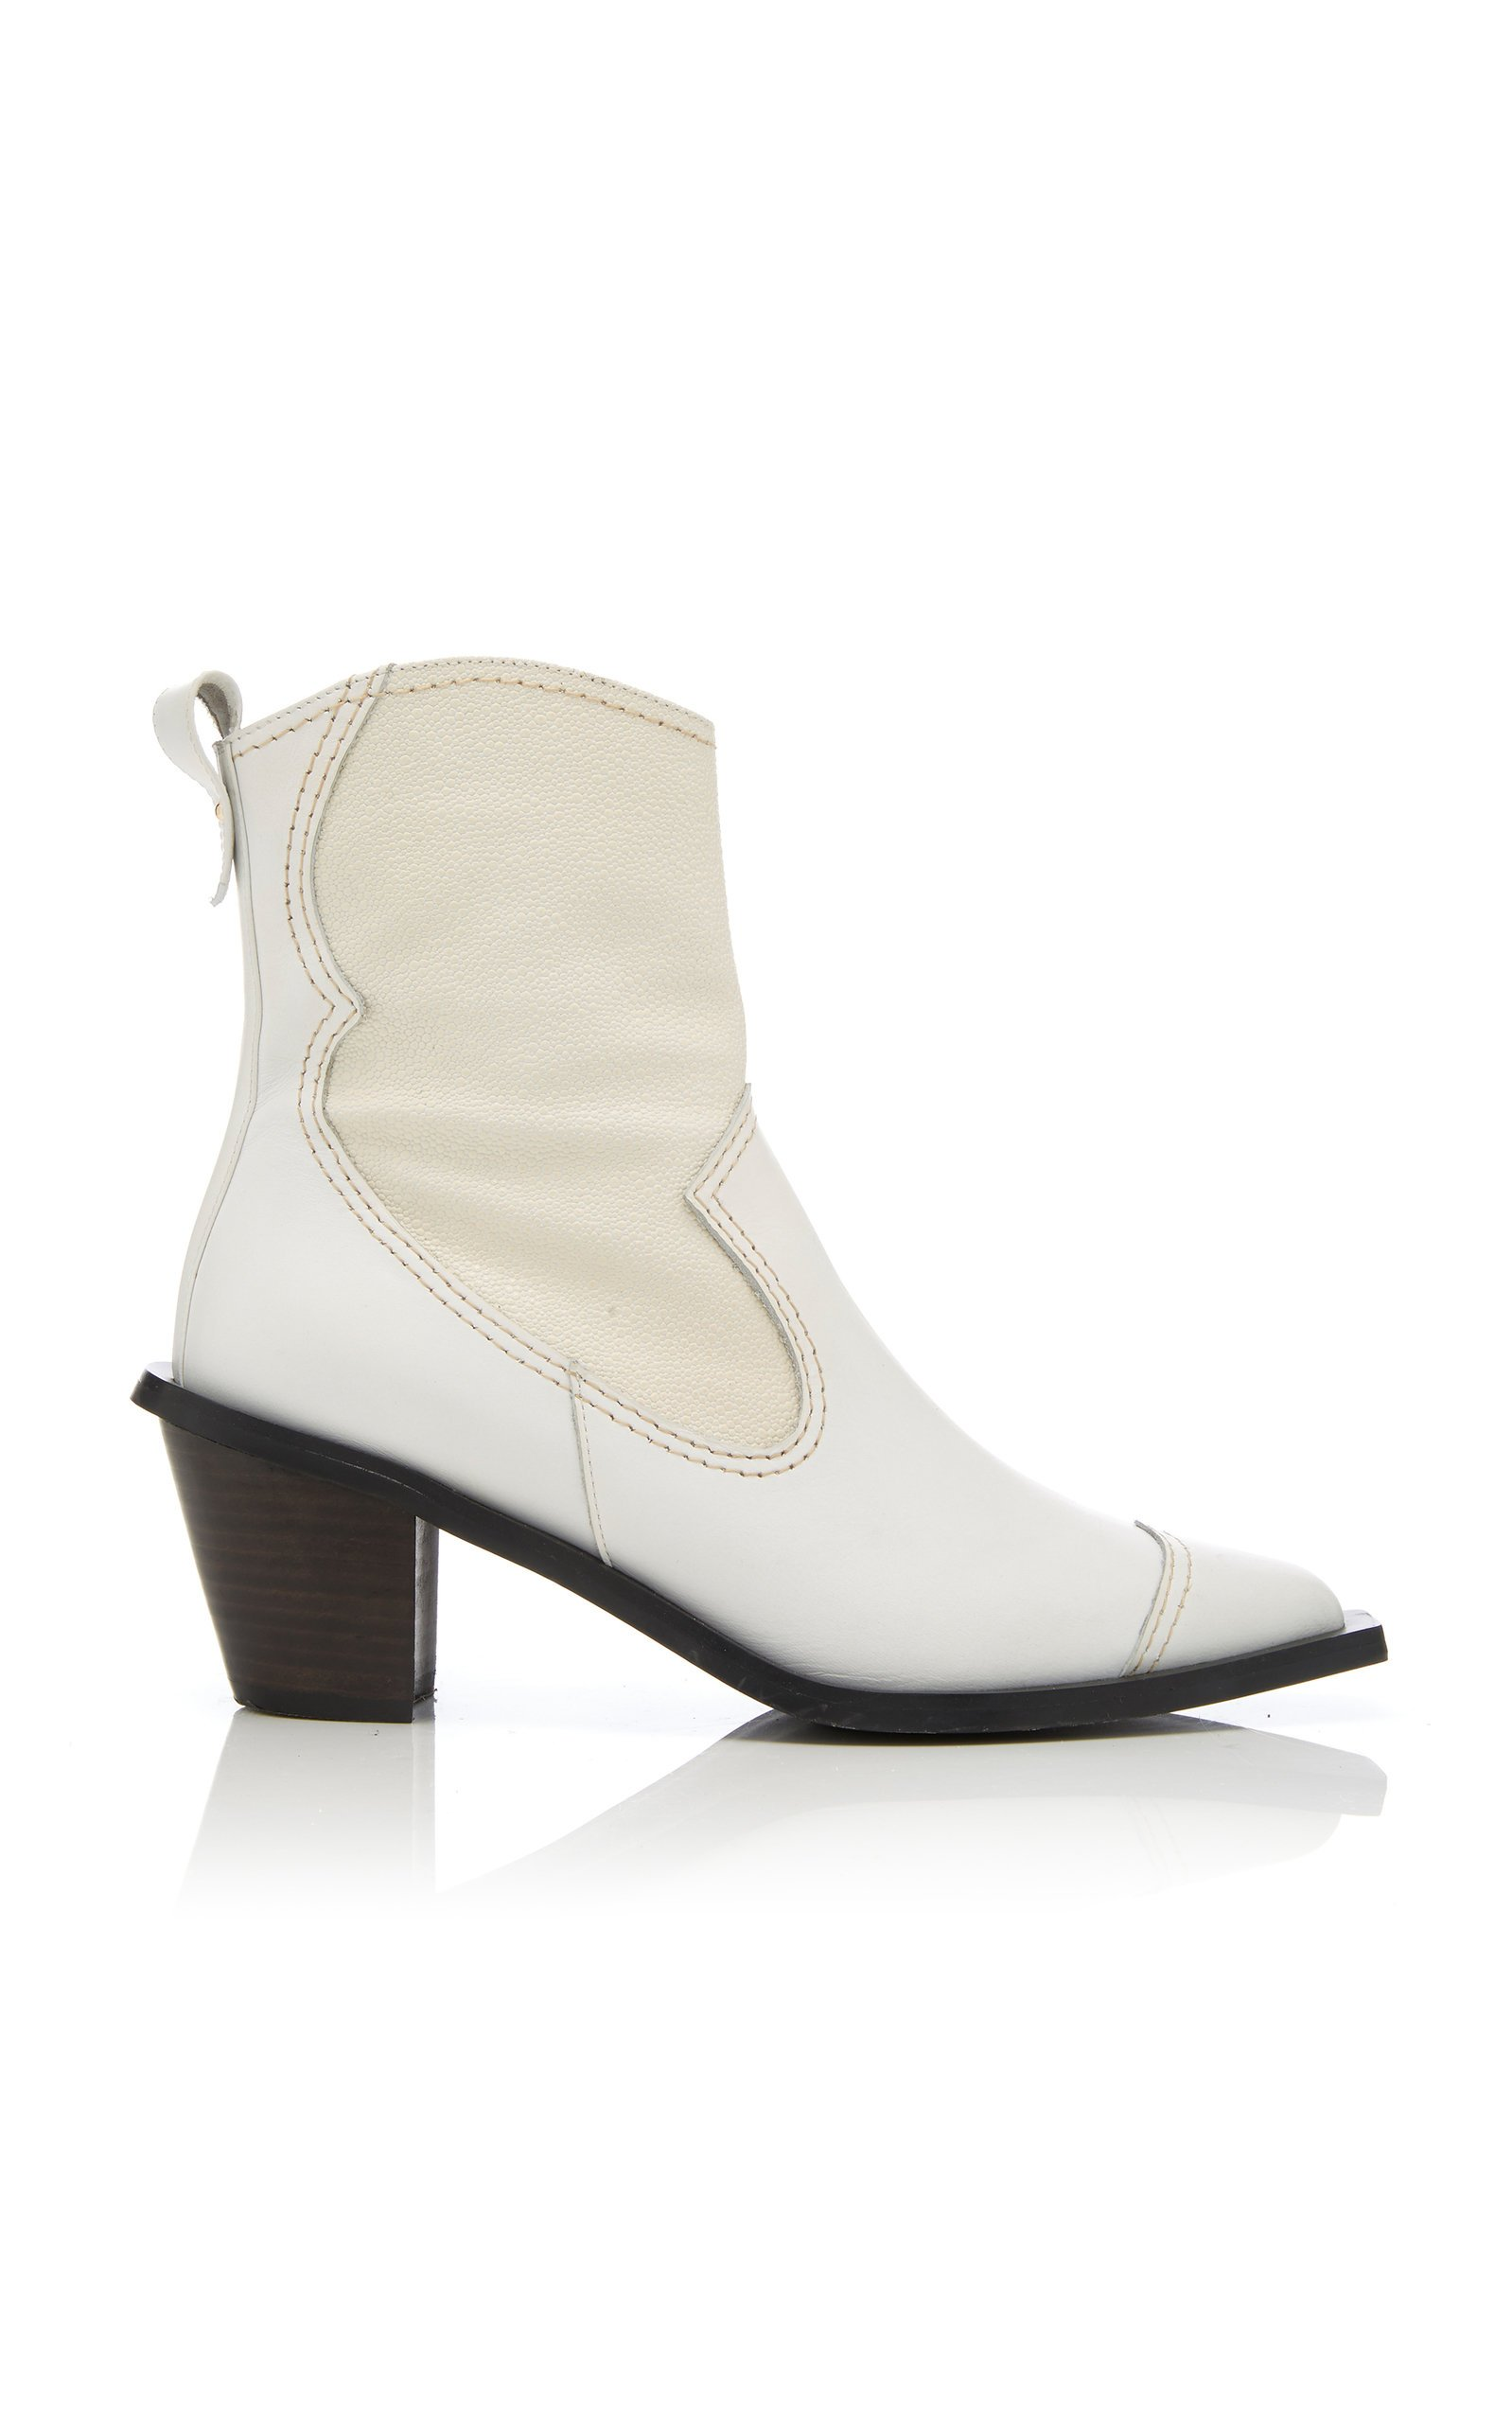 Western Leather Boots By Reike Nen